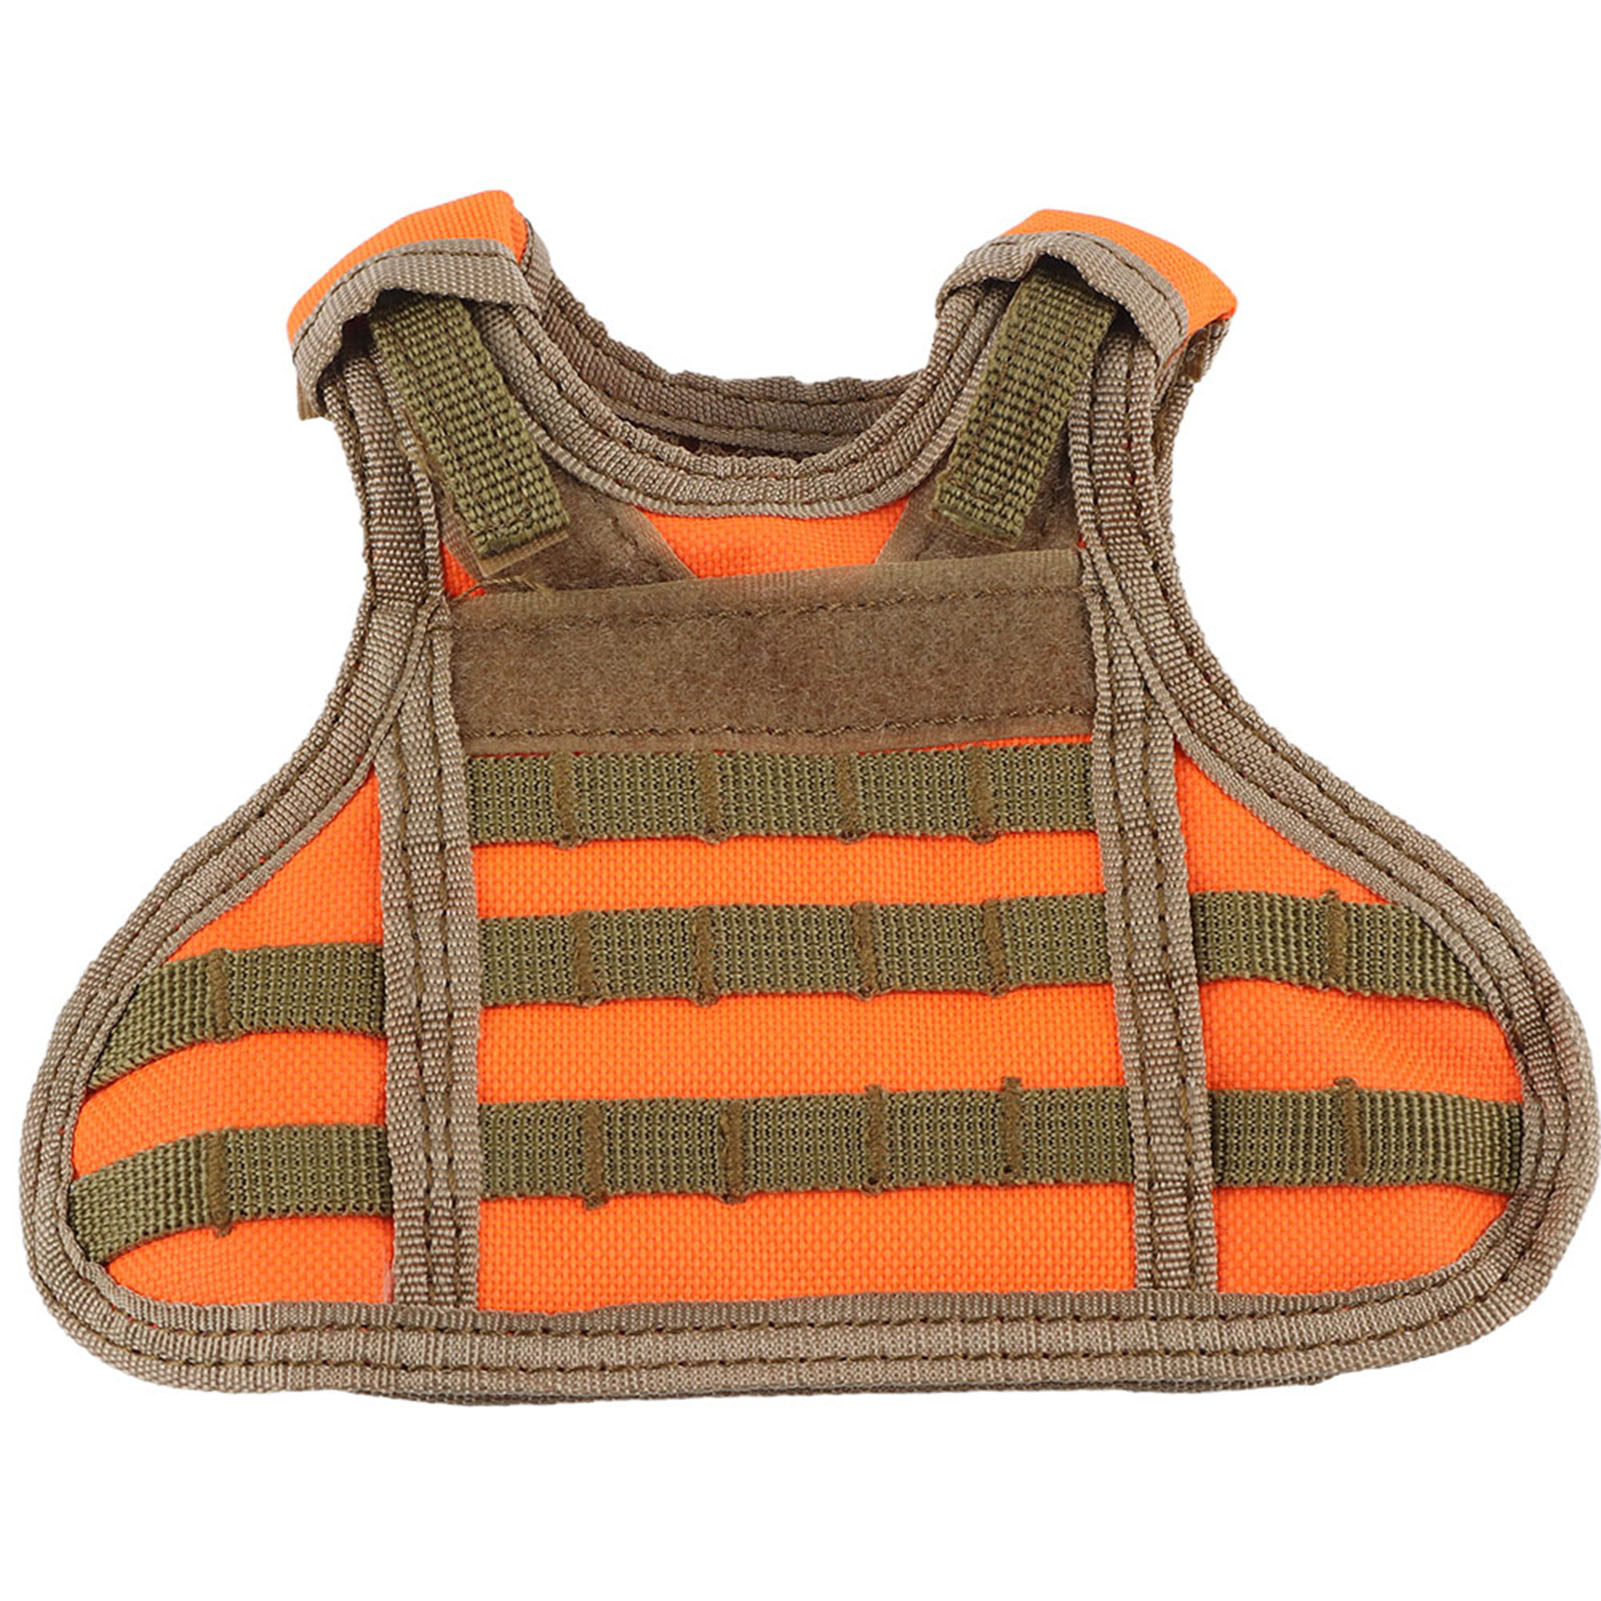 Mini-Military-Tactic-Beer-Water-Bottle-Can-Vest-Carrier-Holder-Beverage-Cover thumbnail 22